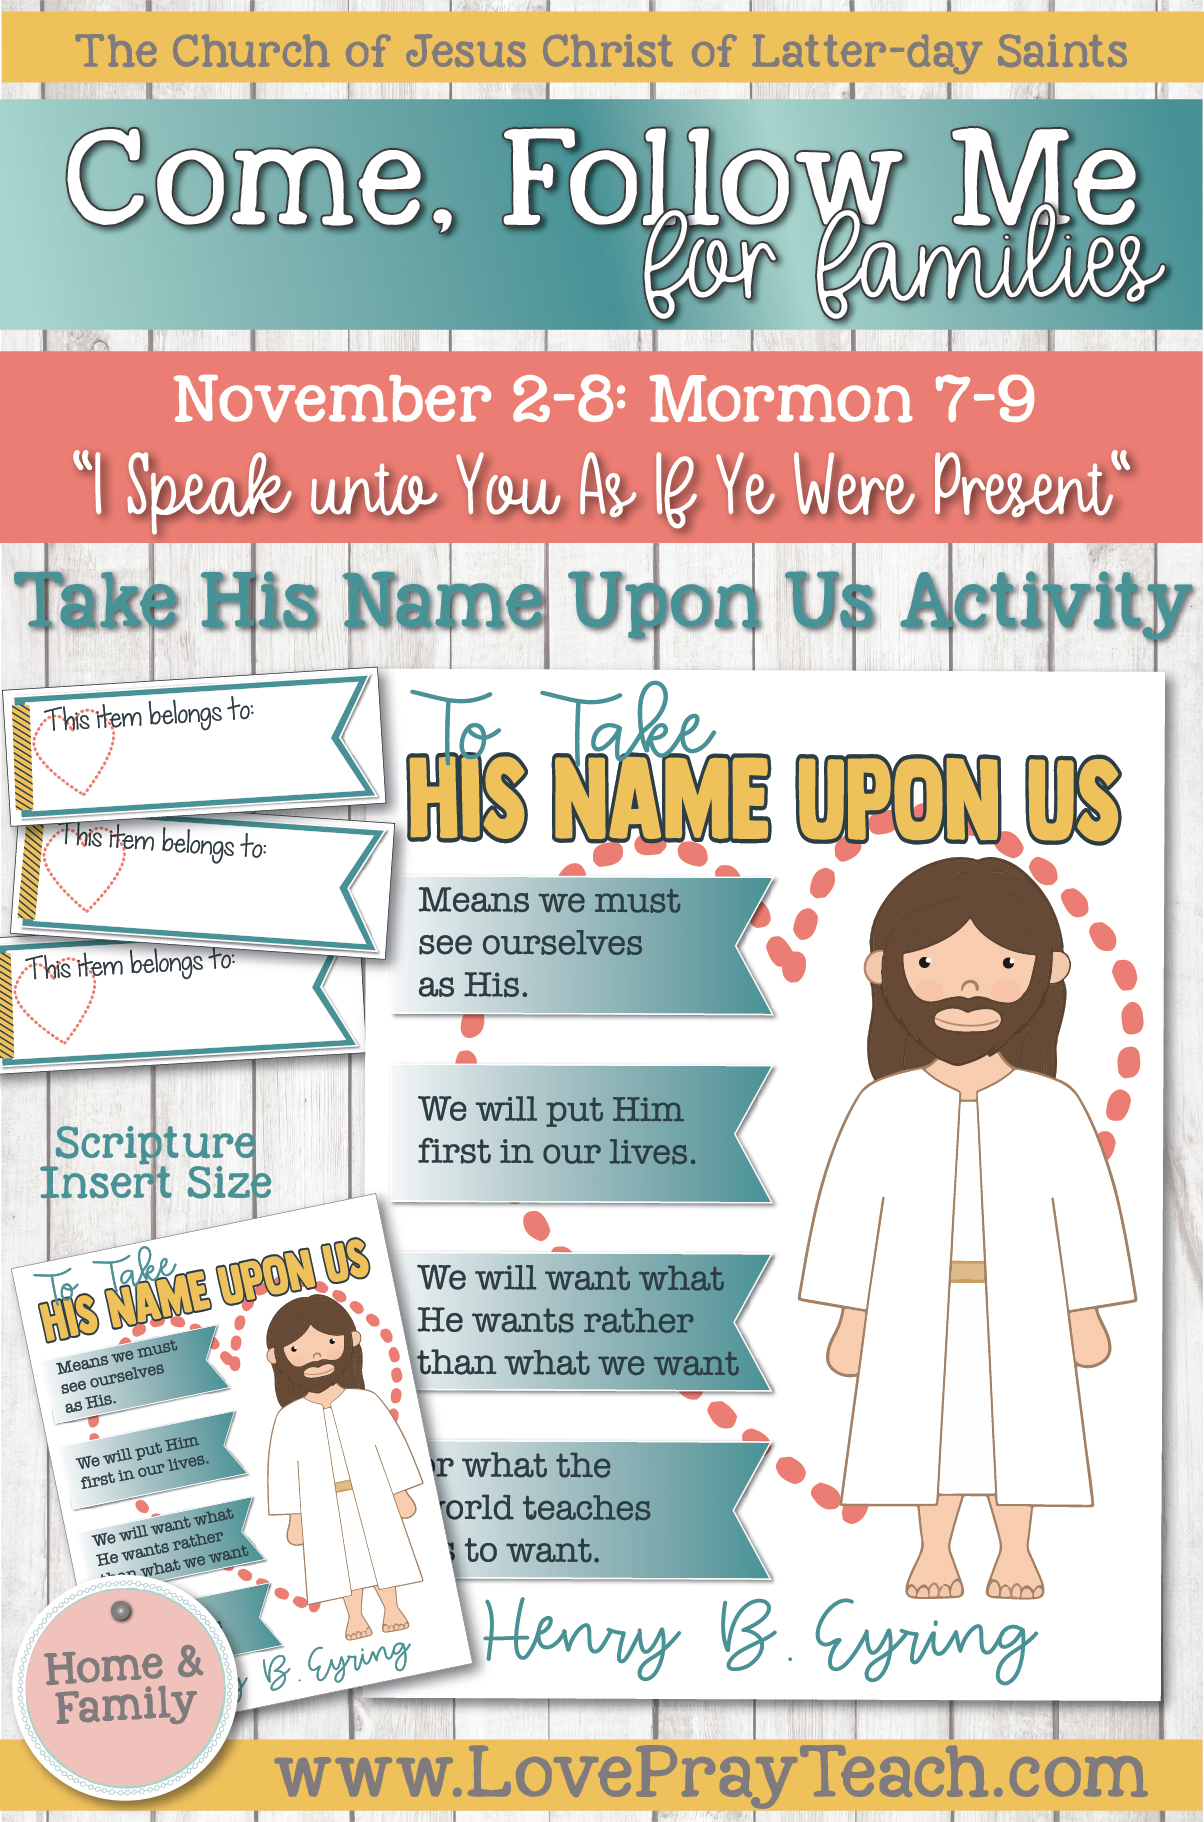 """Come, Follow Me—For Individuals and Families: Book of Mormon 2020 -November Week 2-November 2-8, Mormon 7-9 """"I Speak unto You As If Ye Were Present"""""""